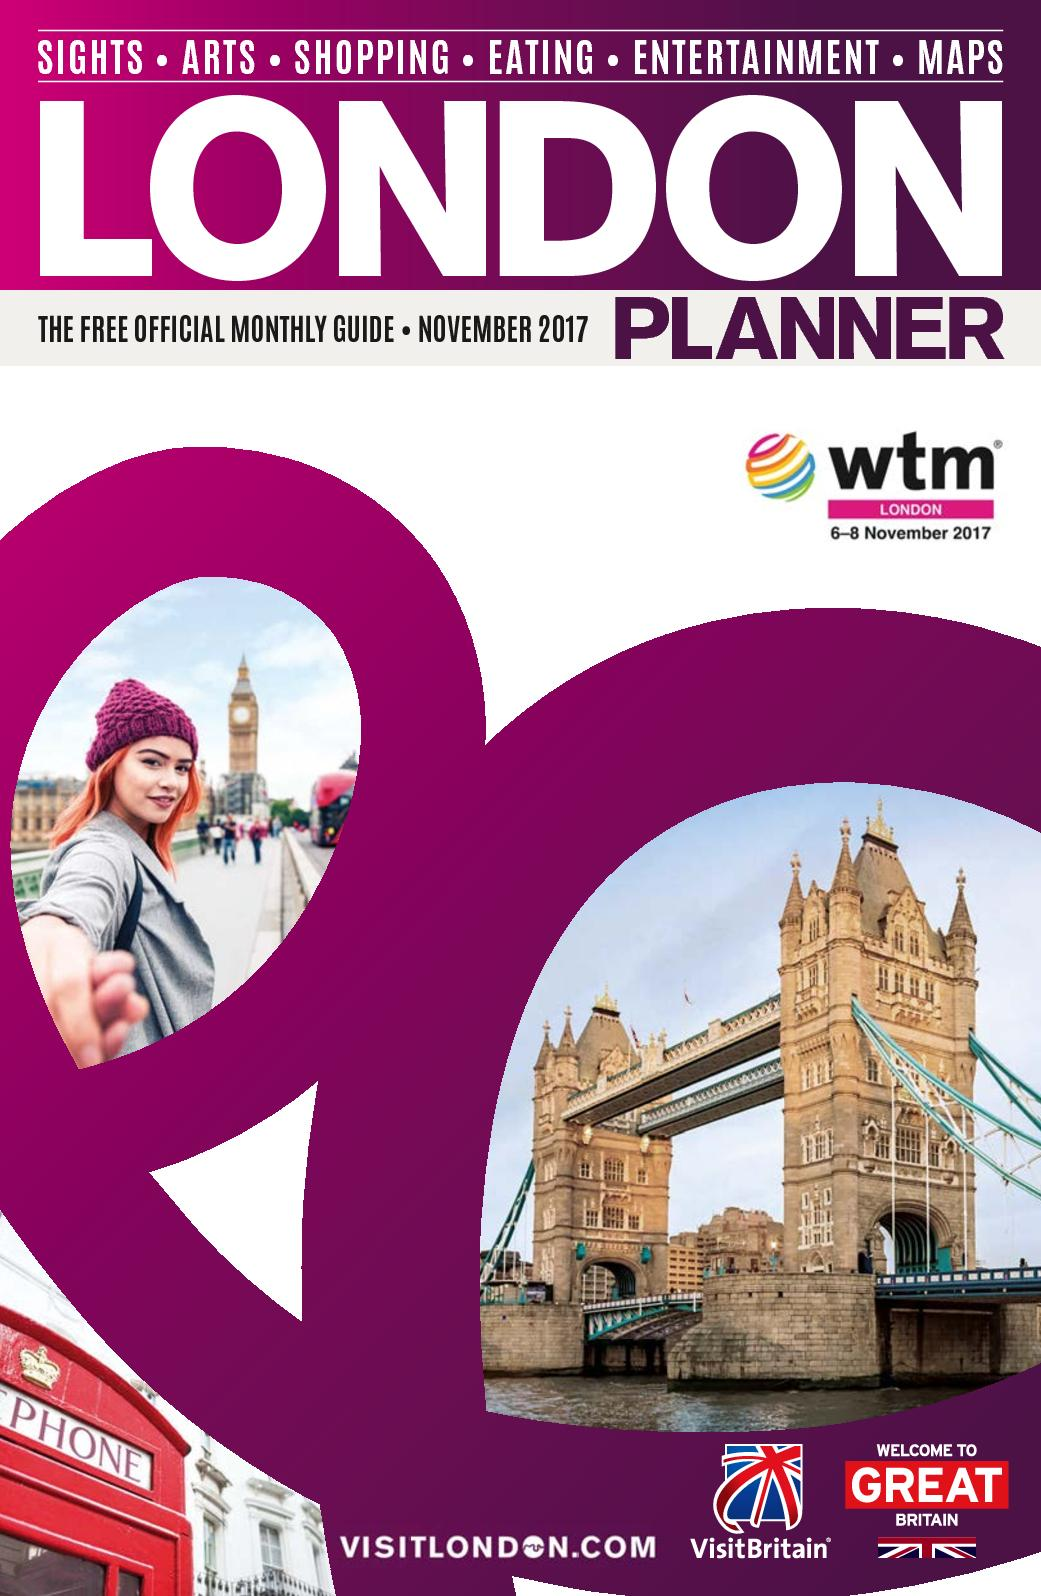 7a3a0992bef Calaméo - LONDON PLANNER NOVEMBER 2017 WTM EDITION